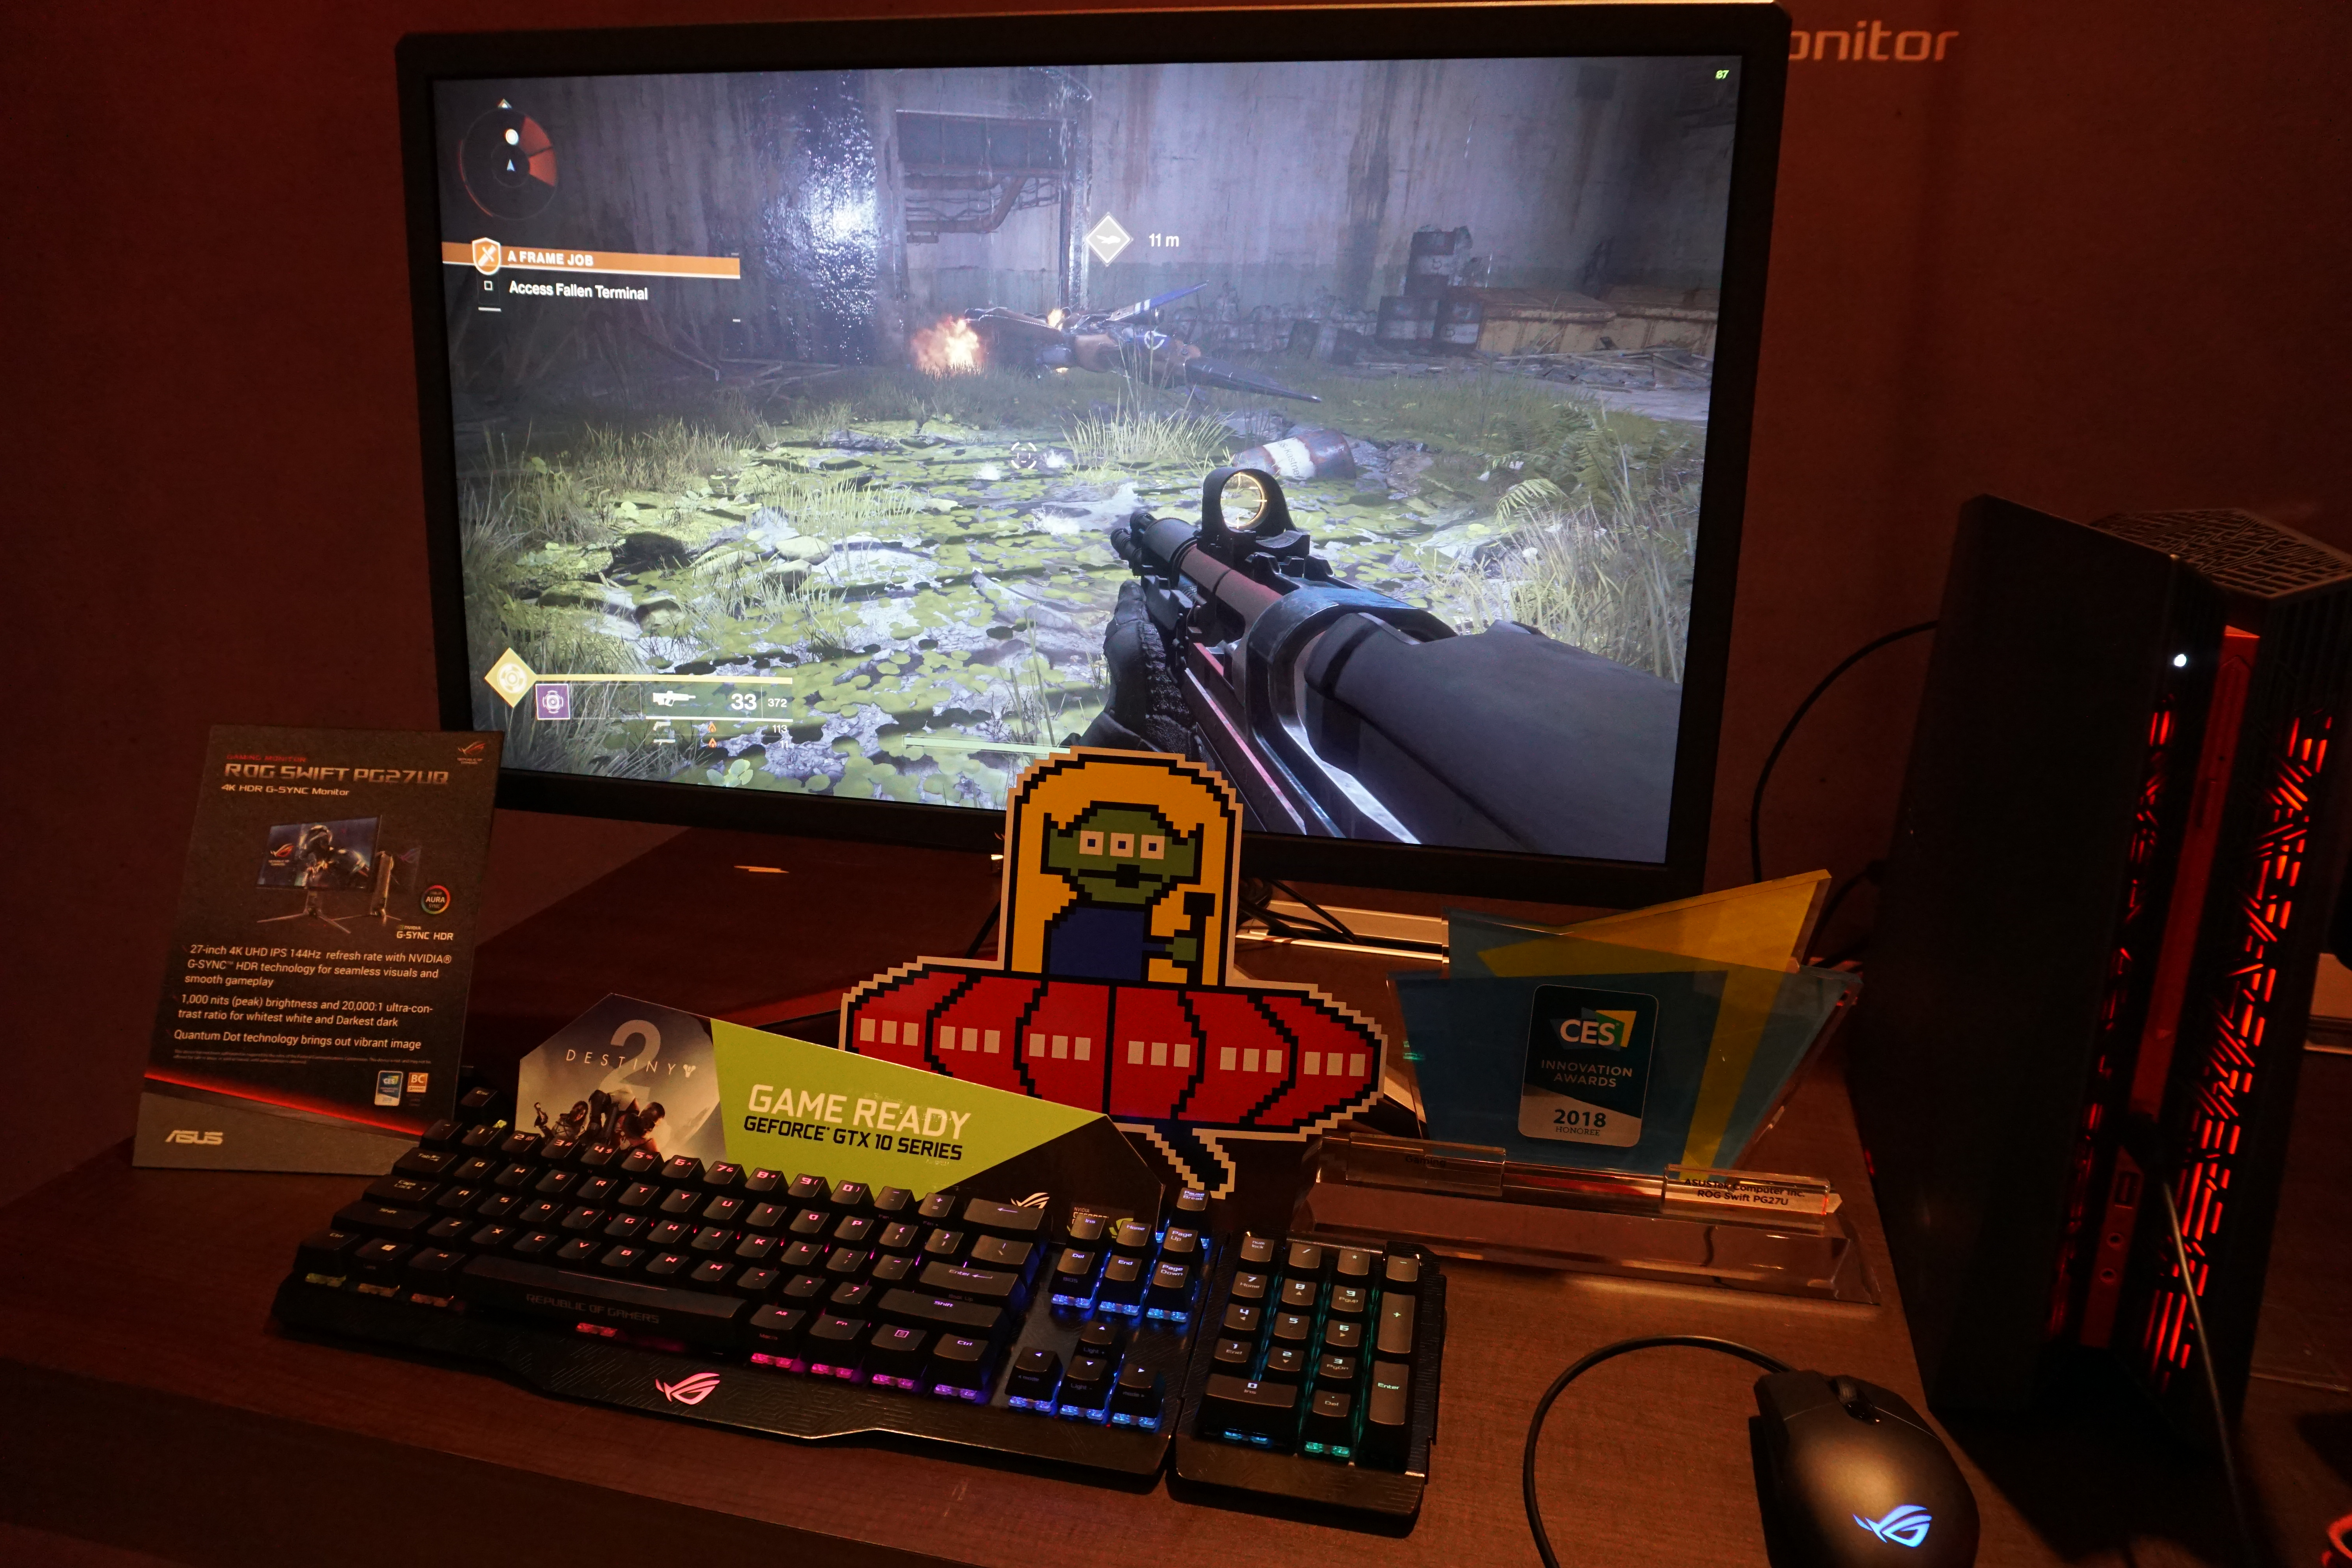 On This Impressive Desktop Monitor, You Certainly Almost Donu0027t Need FSAA,  Which Youu0027ll Likely Need To Turn Off To Keep Frame Rates Very High At 4K  Without ...